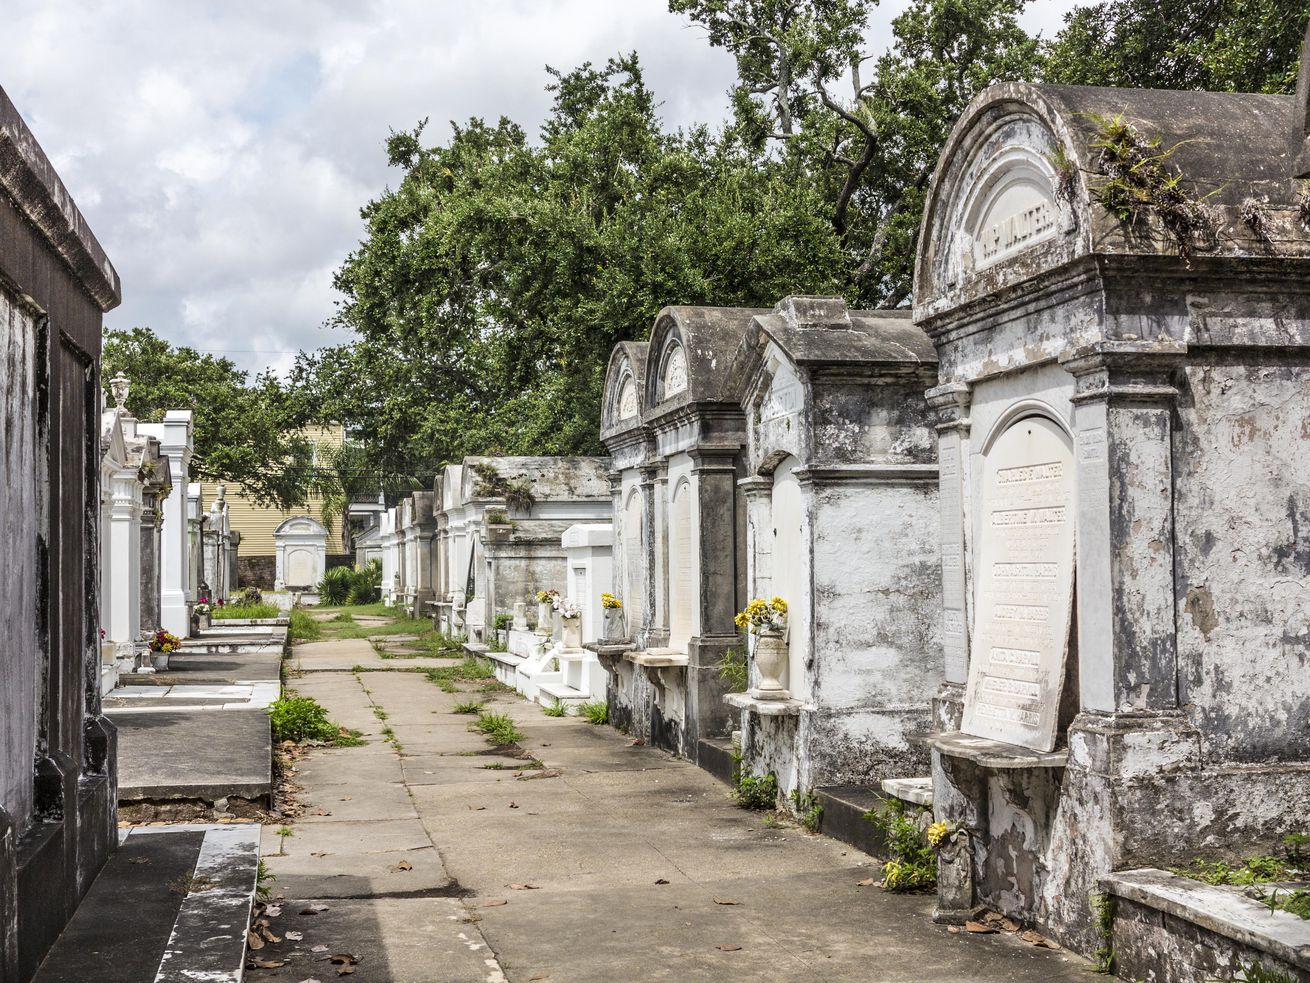 A New Orleans cemetery with above ground graves. The graves are decayed small buildings with arched roofs.